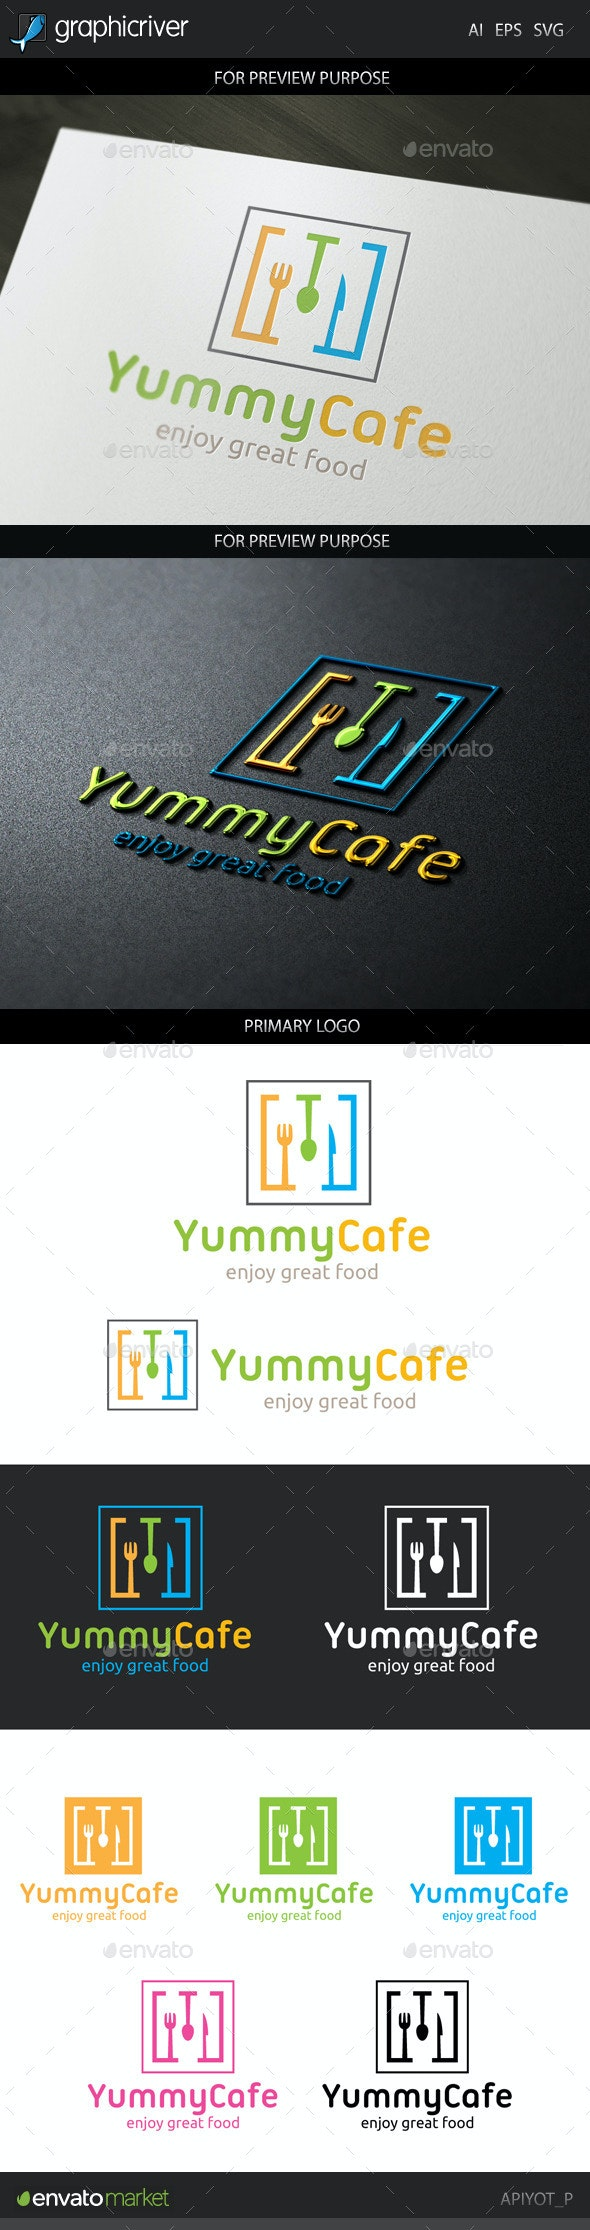 Yummy Cafe Logo